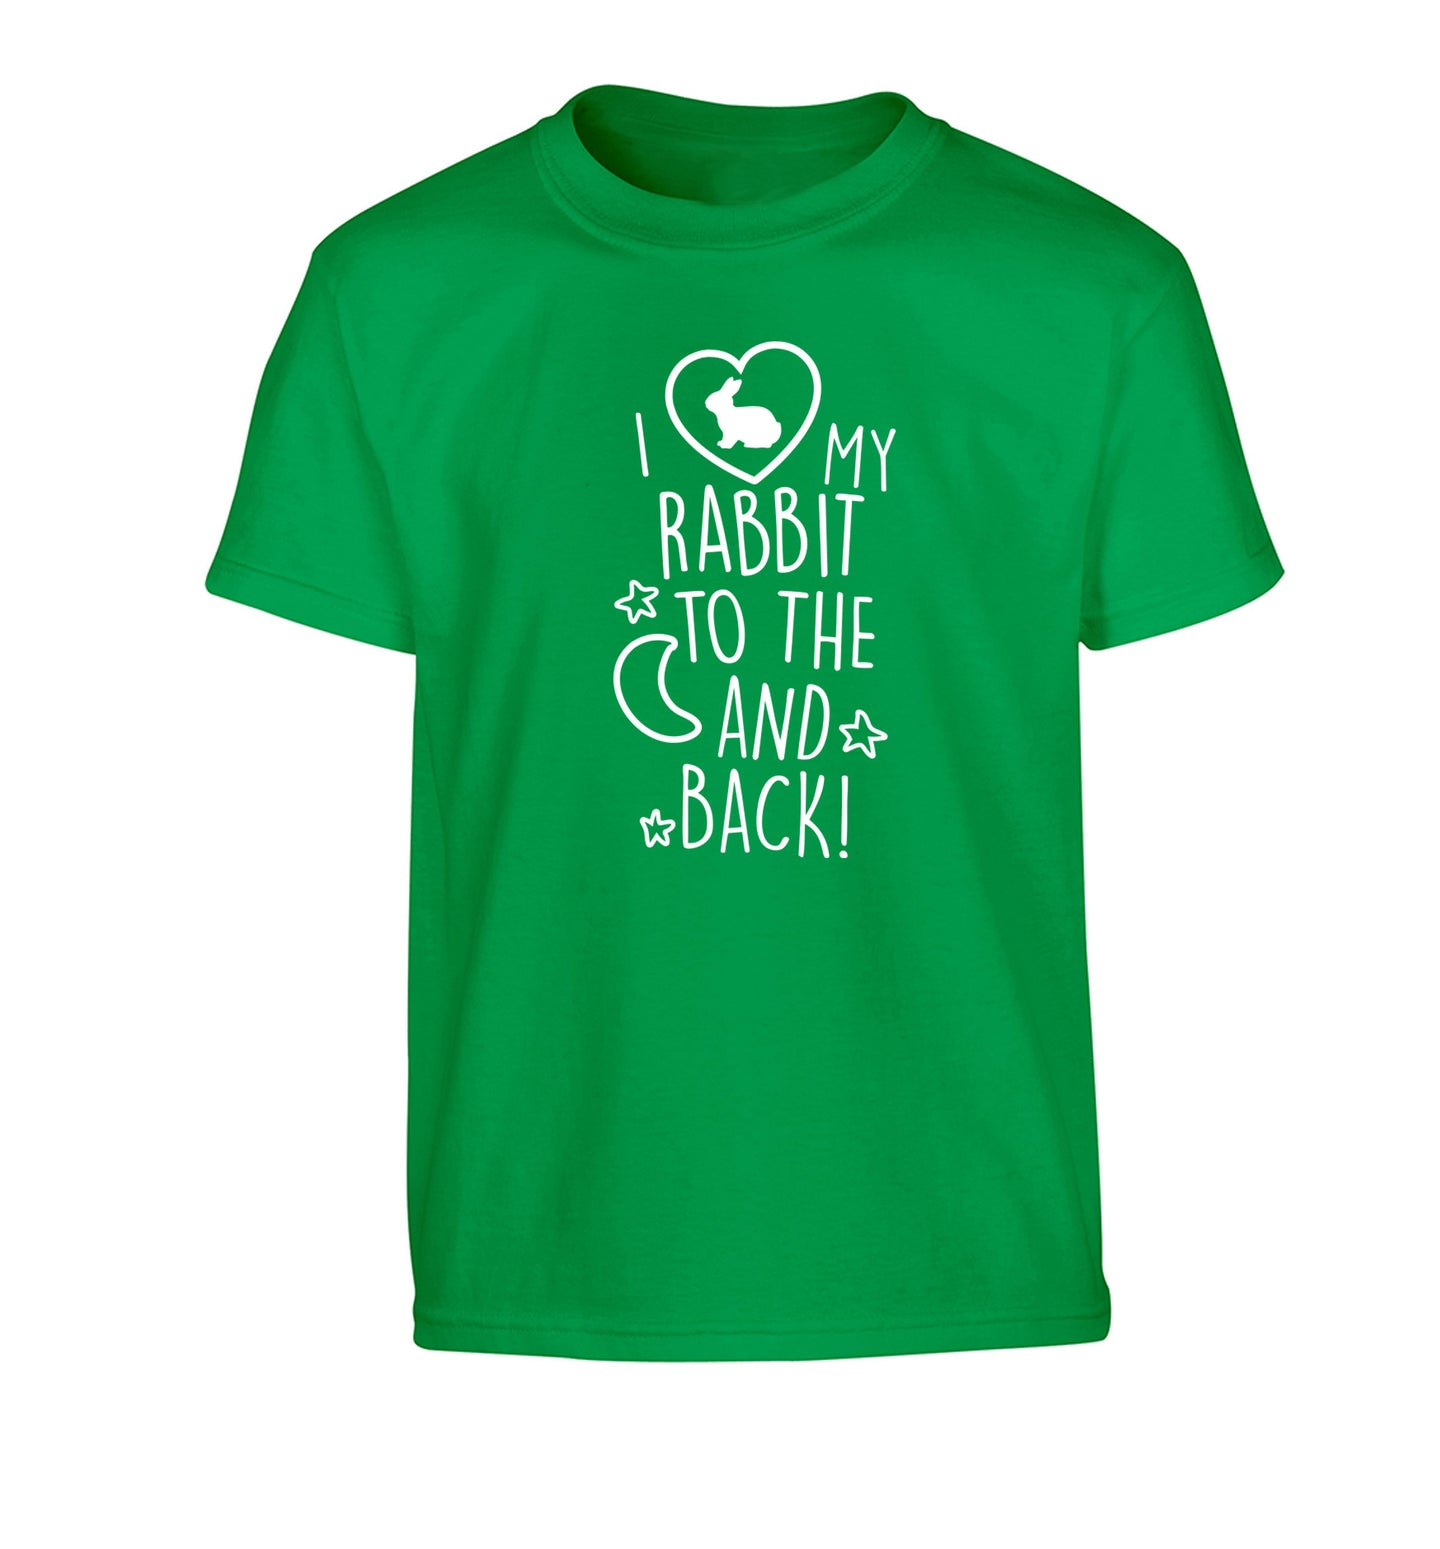 I love my rabbit to the moon and back Children's green Tshirt 12-14 Years